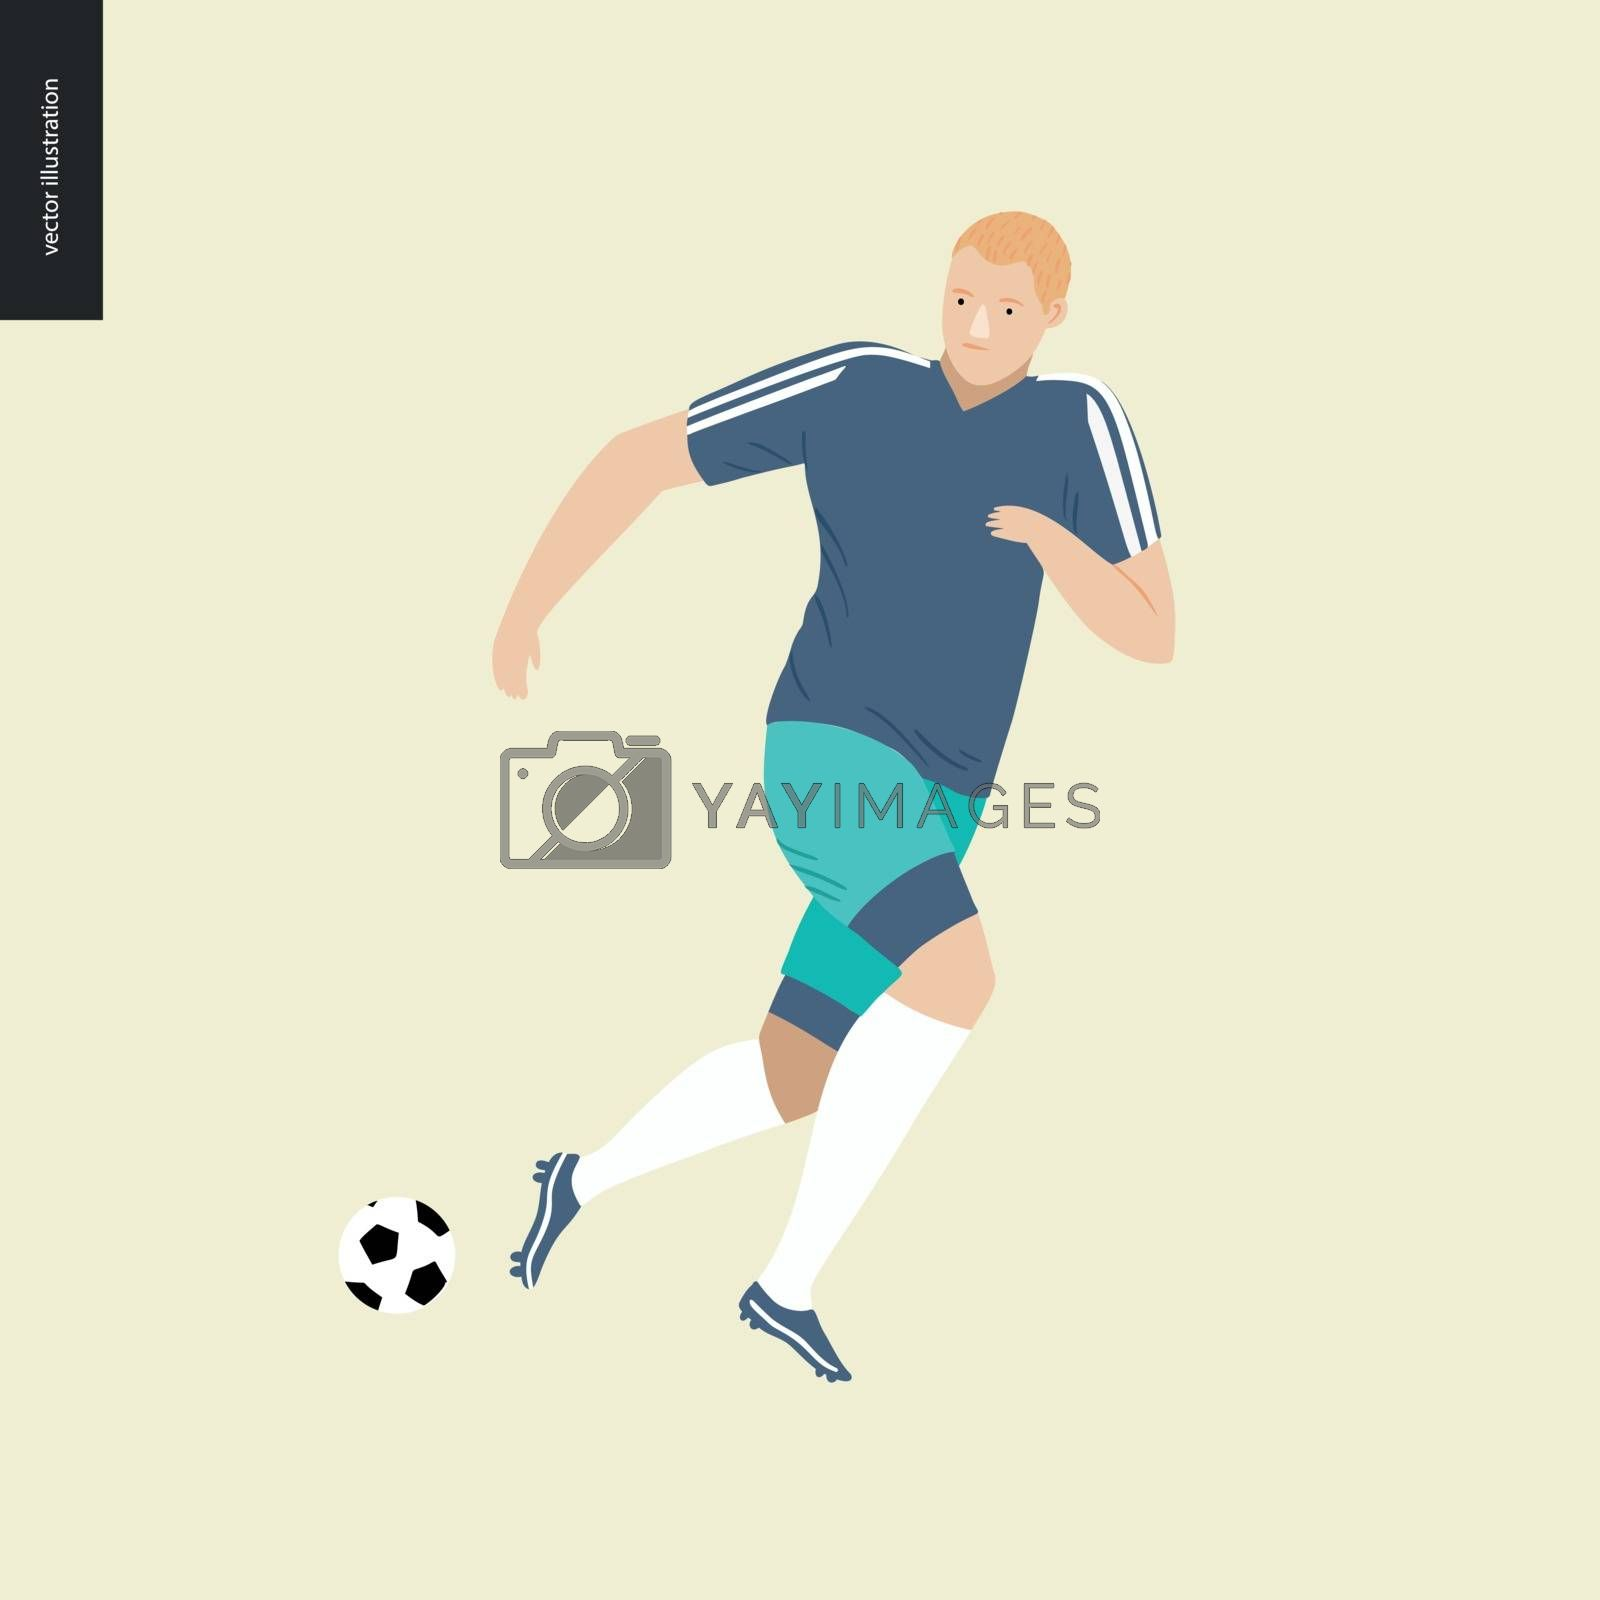 European football, soccer player by grivina